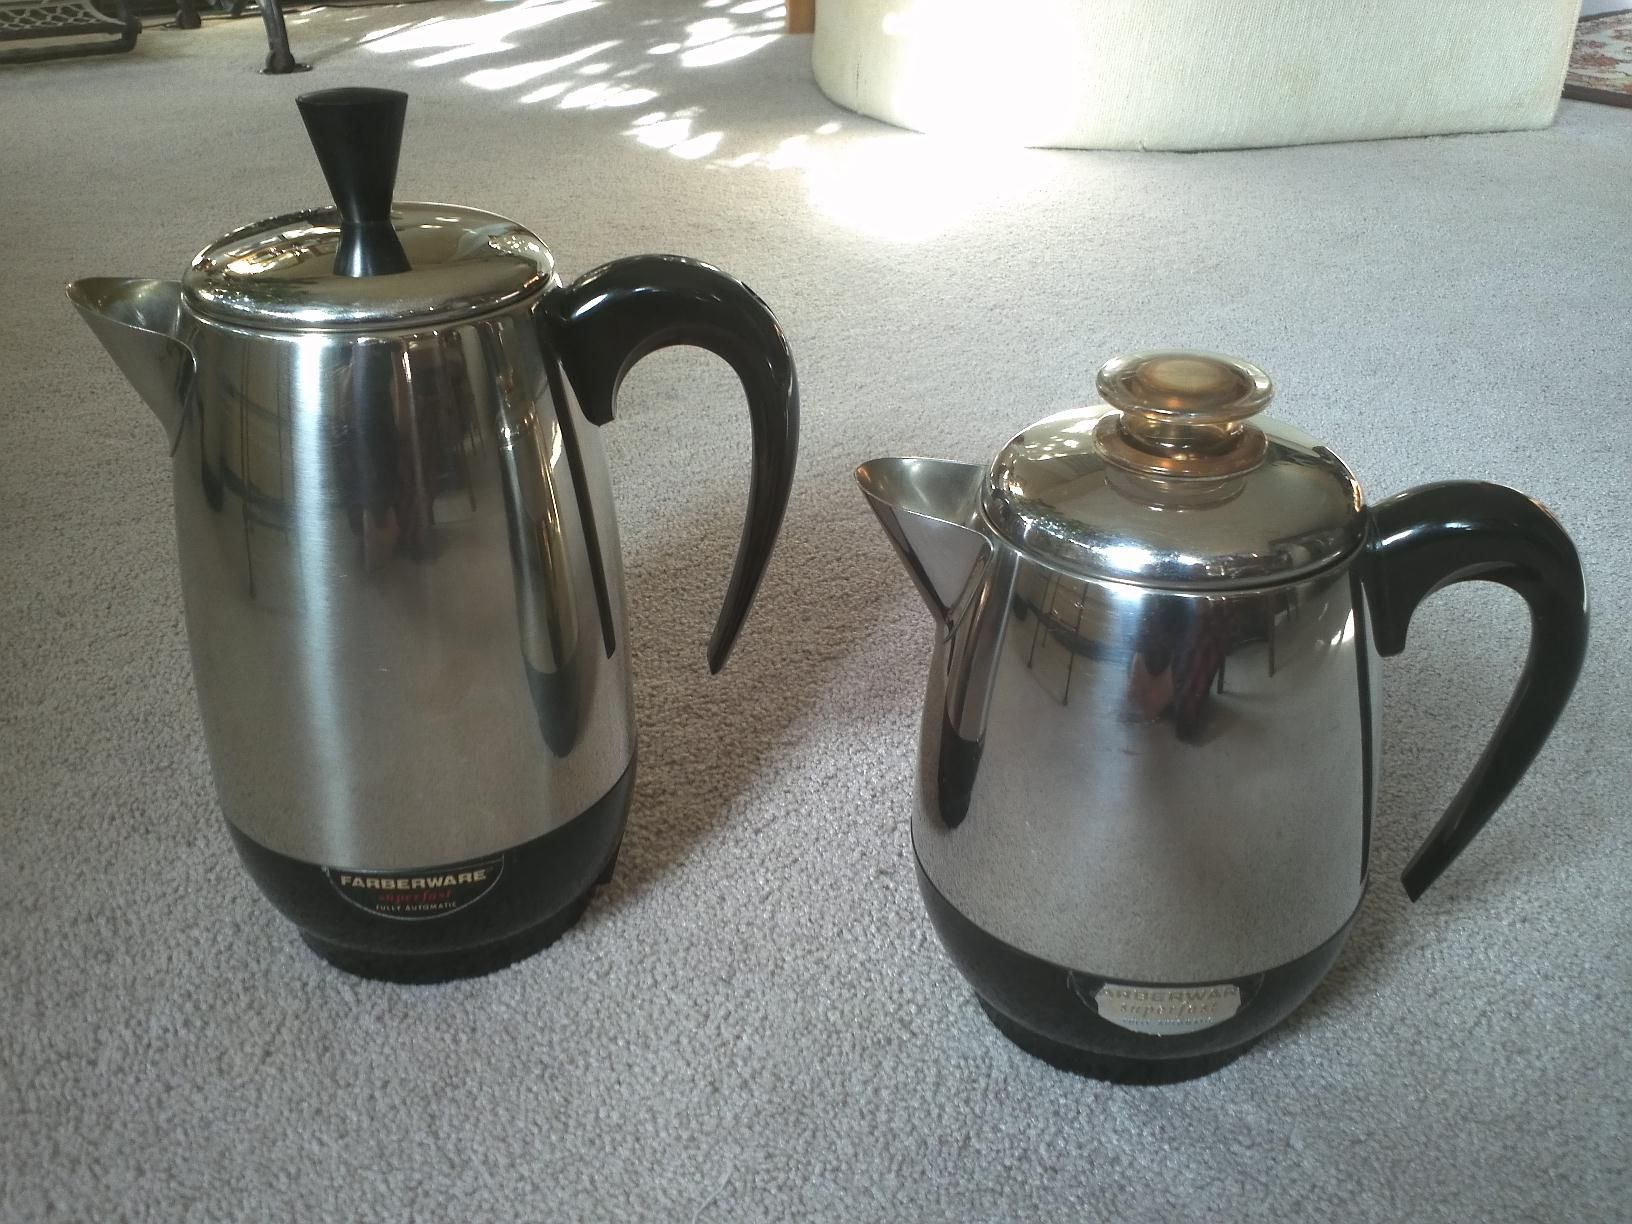 West Bend Flavo Matic Electric Coffee Percolator Pot Bakelite Handle Red  8 Cup